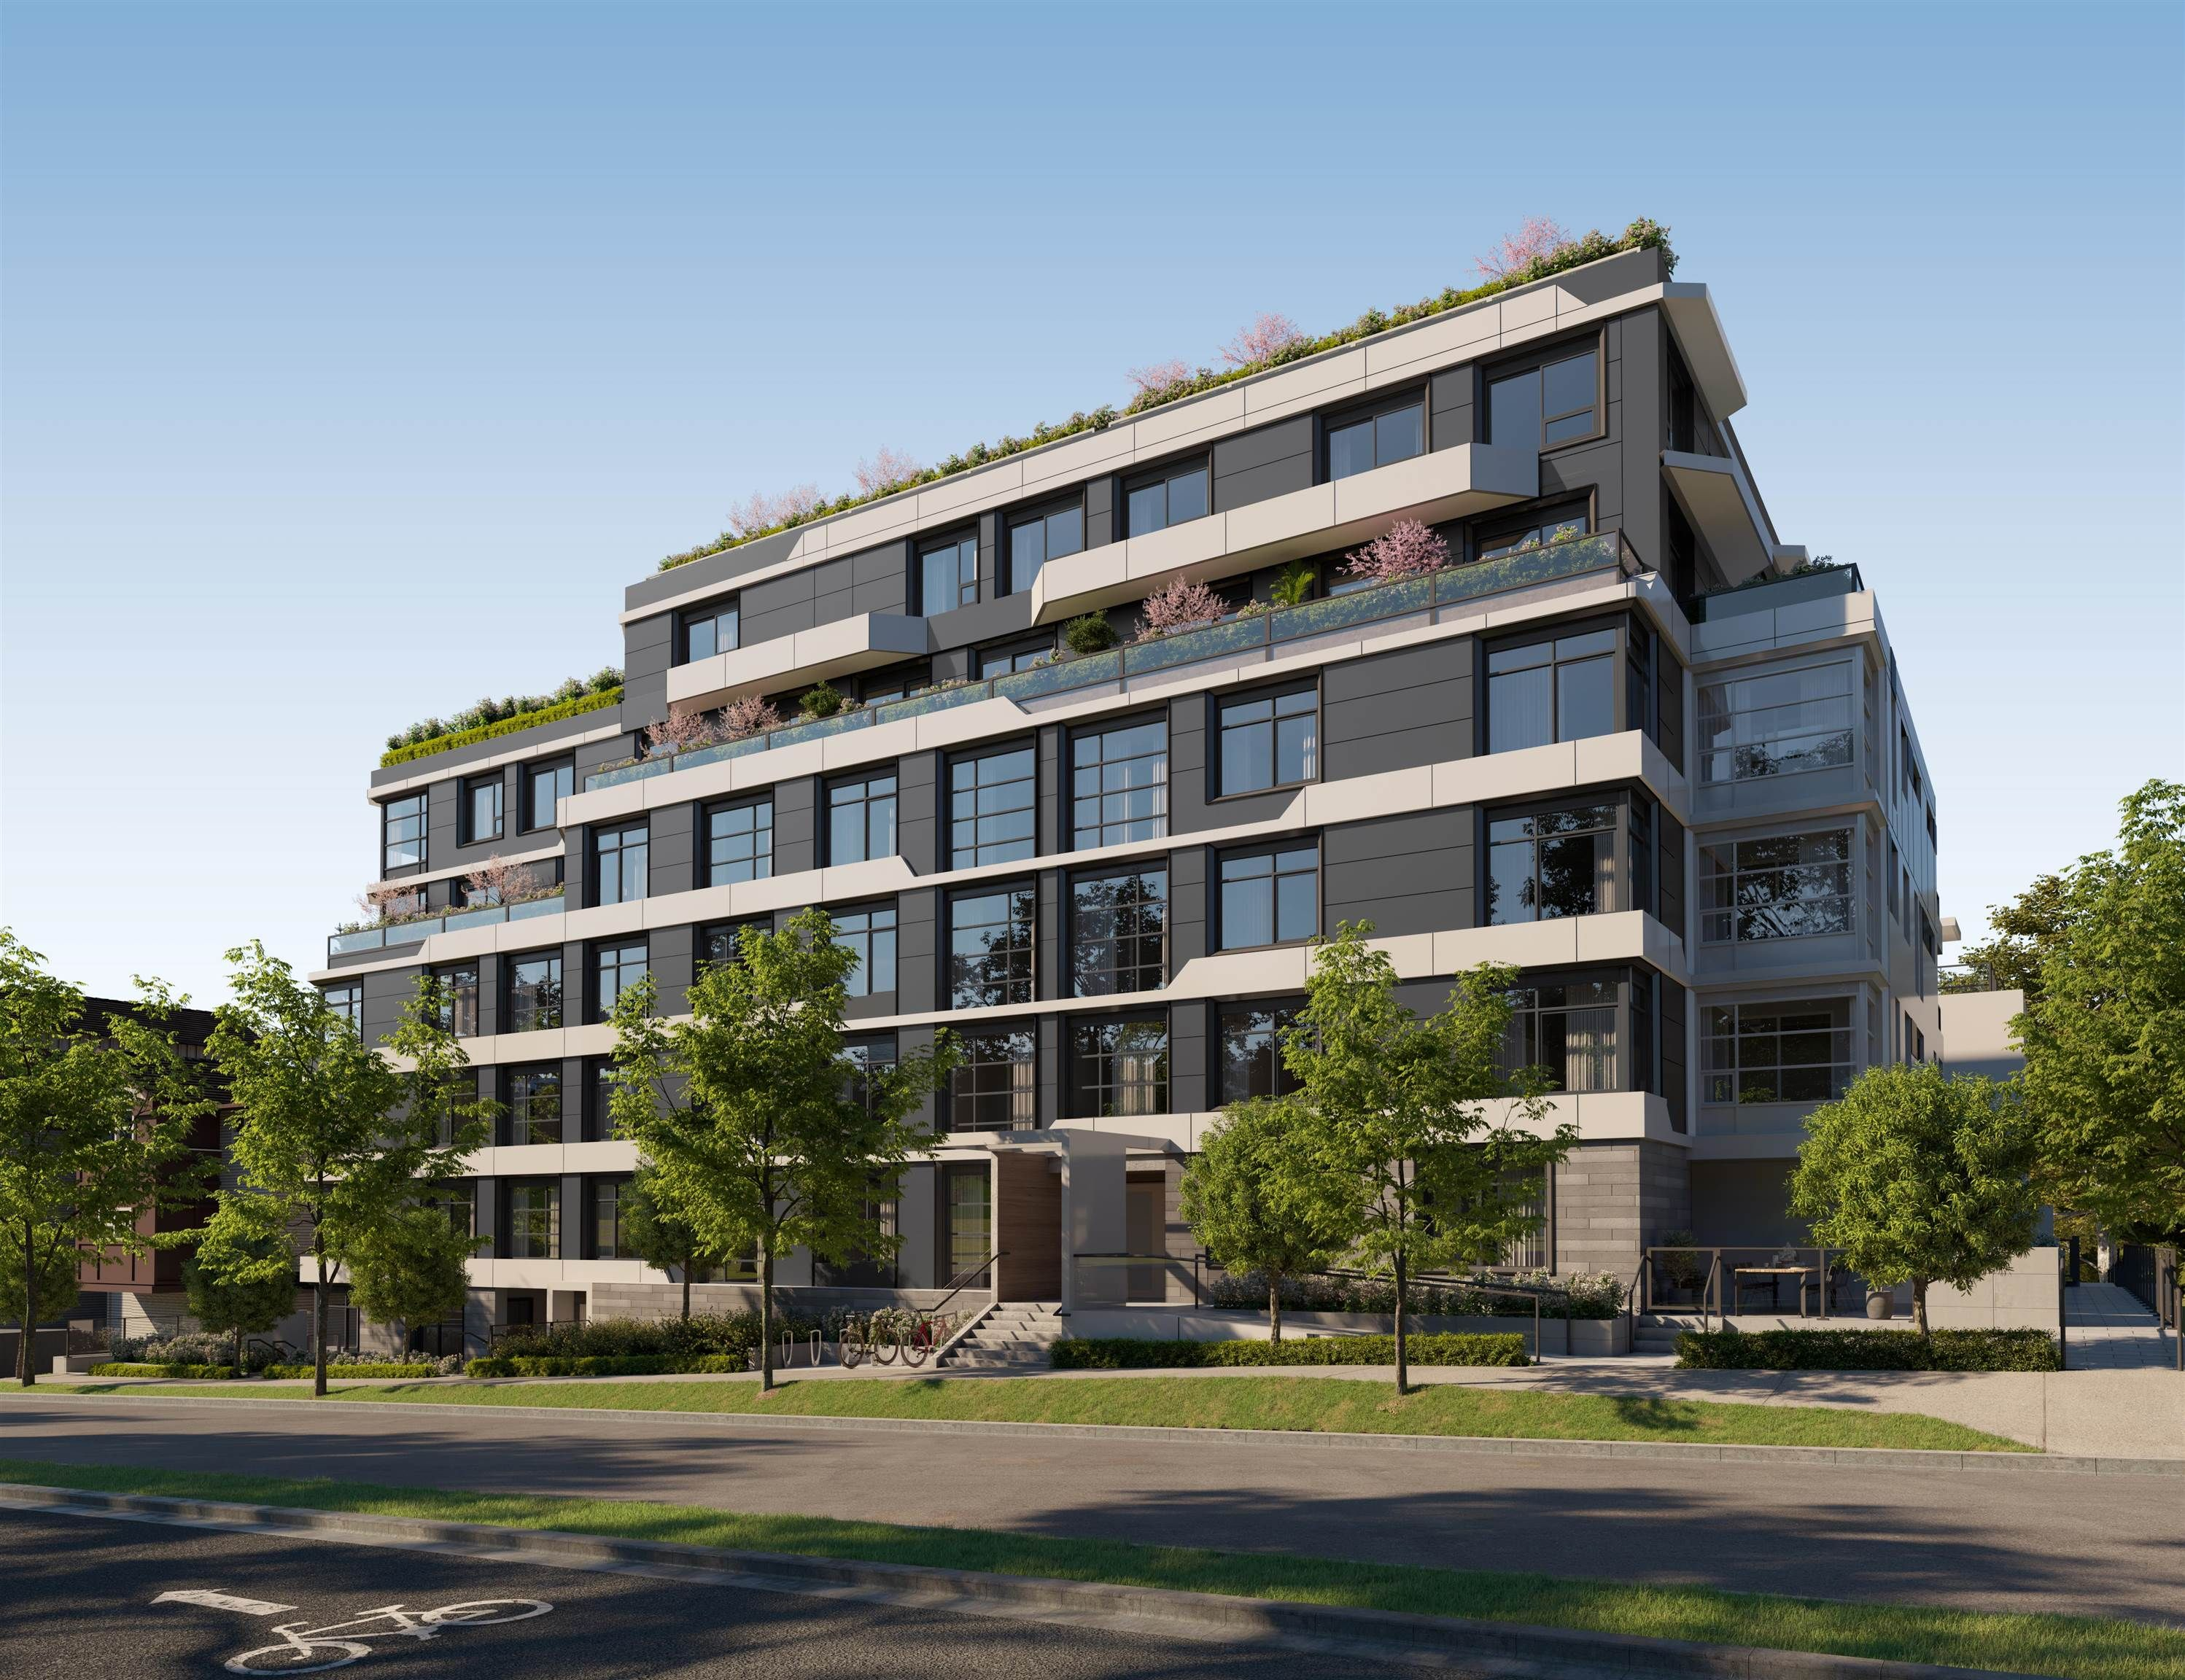 """Main Photo: 104 3264 VANNESS Avenue in Vancouver: Collingwood VE Condo for sale in """"Clive at Collingwood"""" (Vancouver East)  : MLS®# R2625655"""